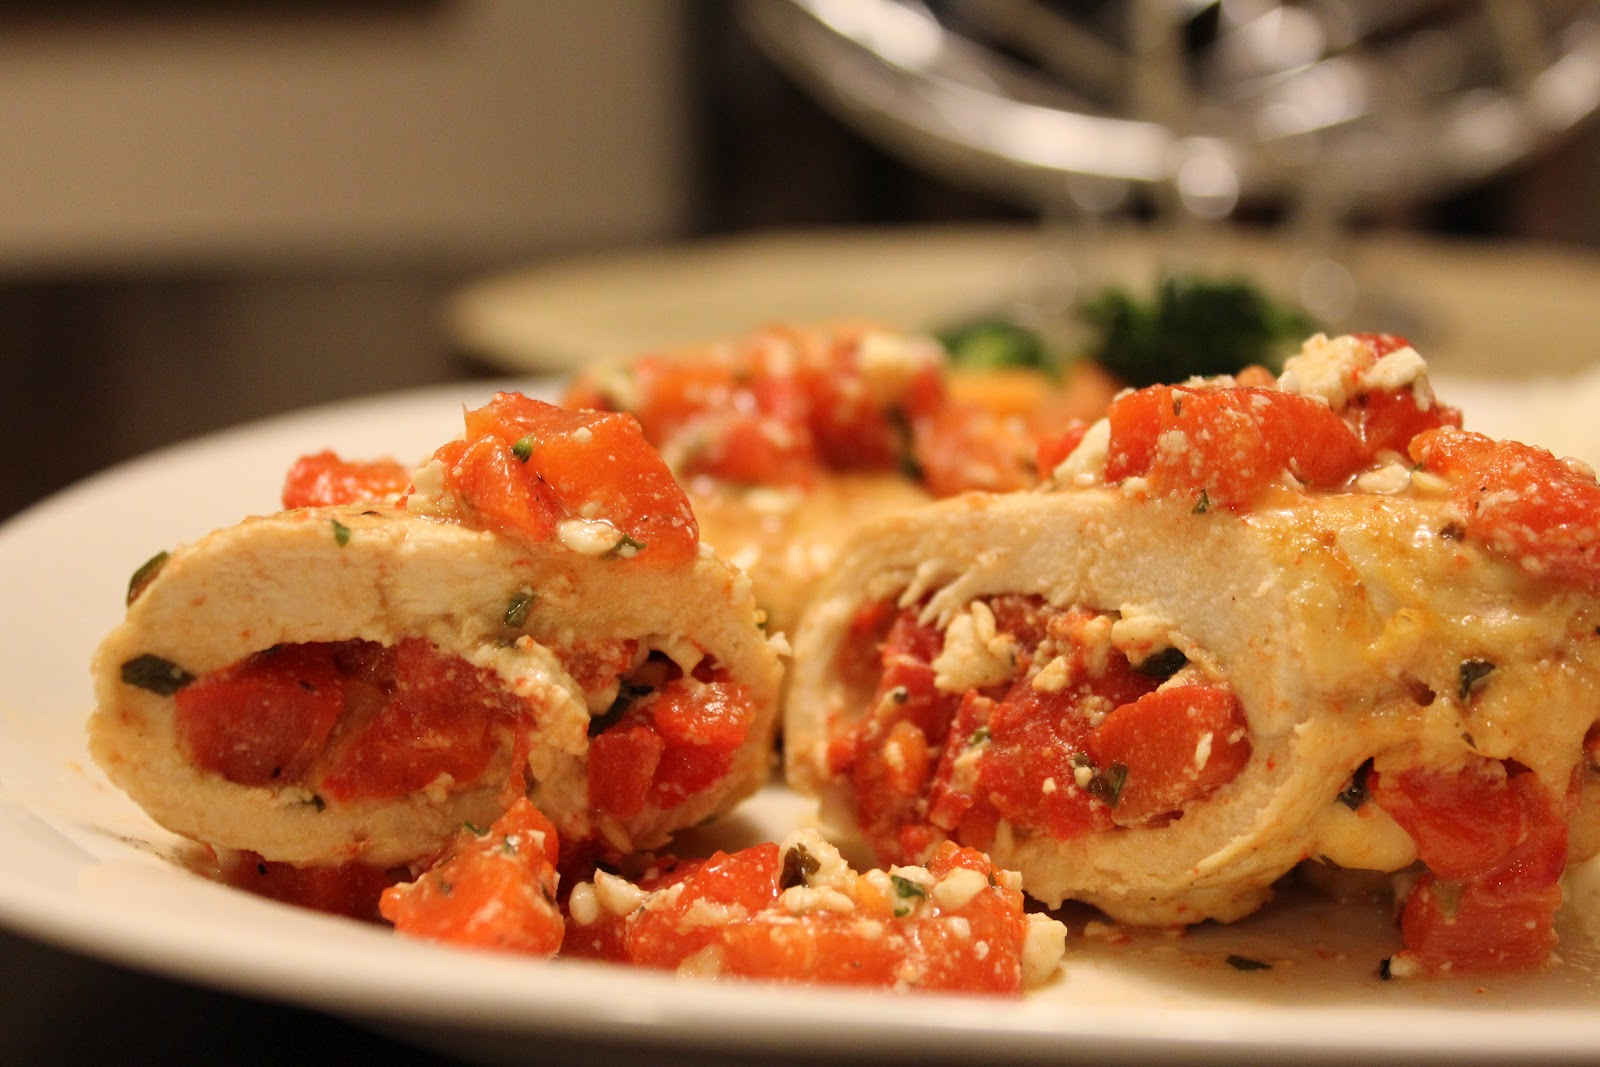 ... Treats & Delectable Dishes: Roasted Red Pepper & Feta Stuffed Chi...